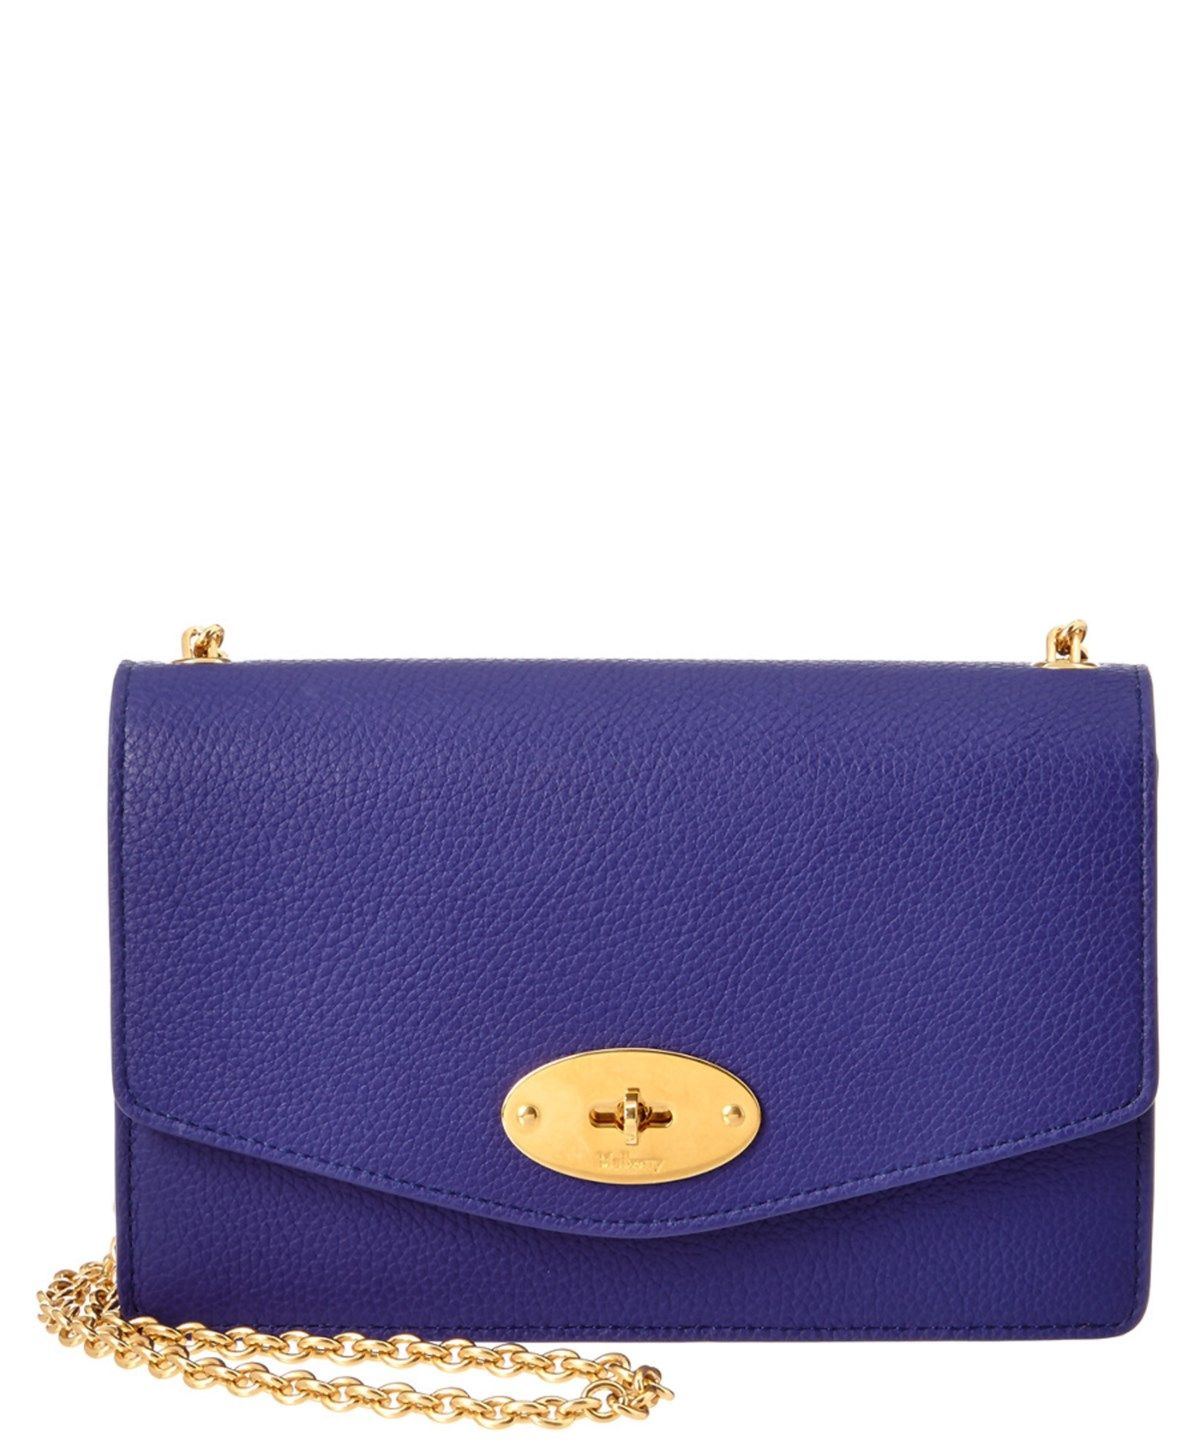 MULBERRY Mulberry Darley Small Classic Grain Leather Crossbody .  mulberry   bags  shoulder bags  leather  crossbody  lining   282c7139fa6ed